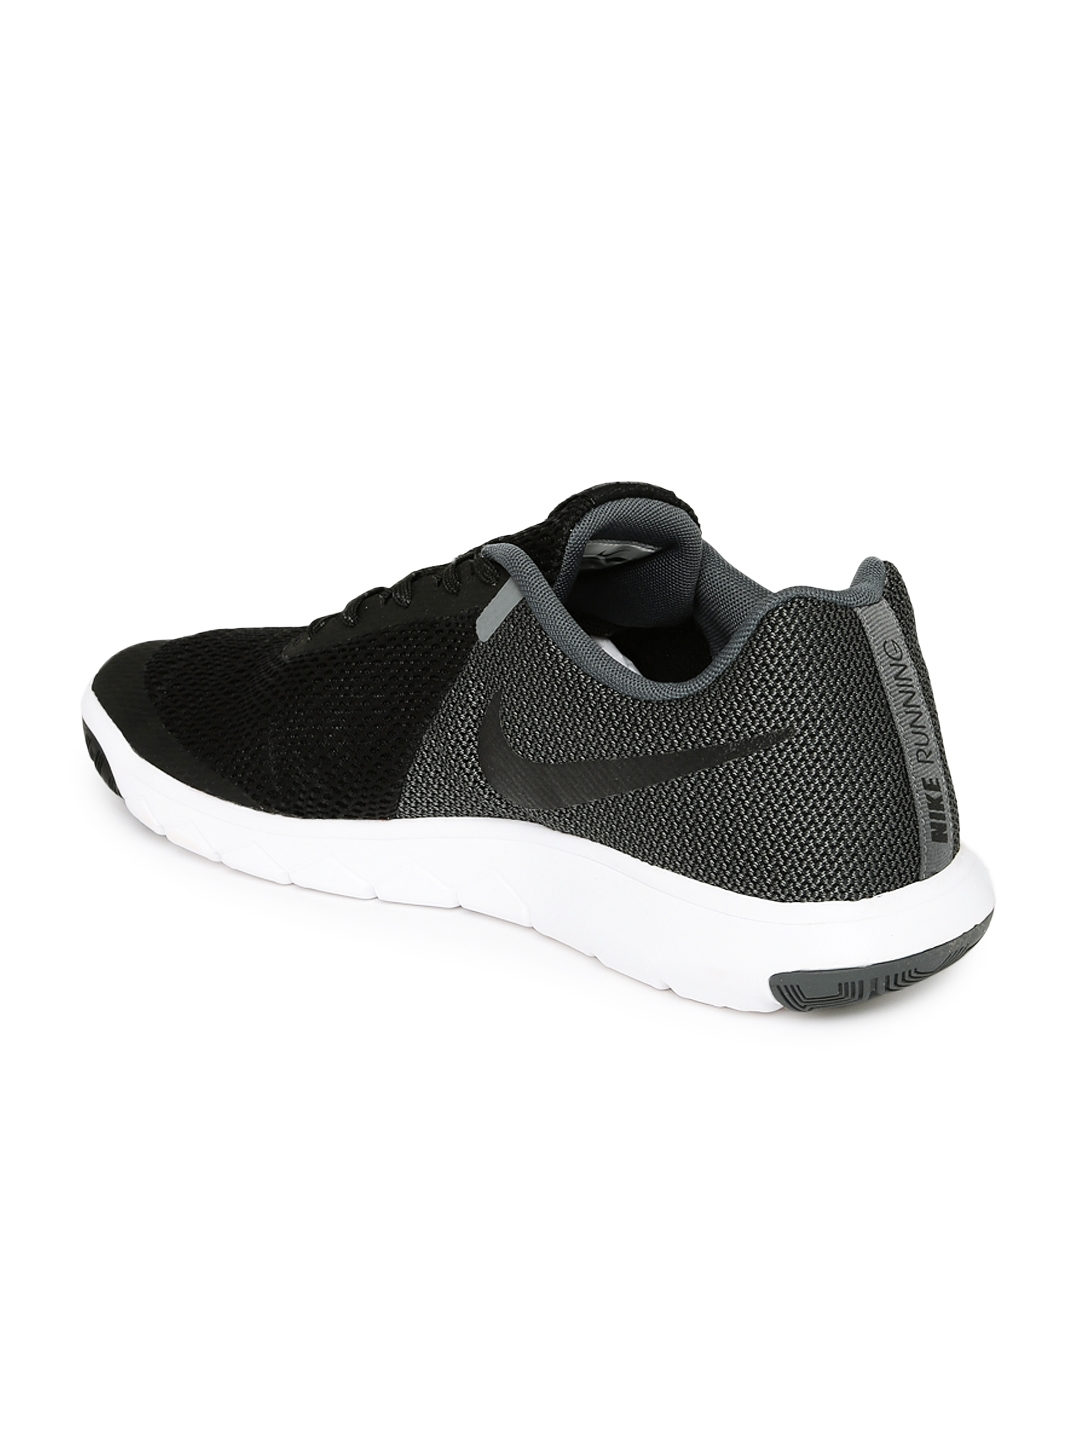 11d88f35e496e 11474961005042-Nike-Men-Black-Running-Shoes-9831474961004871-2.jpg